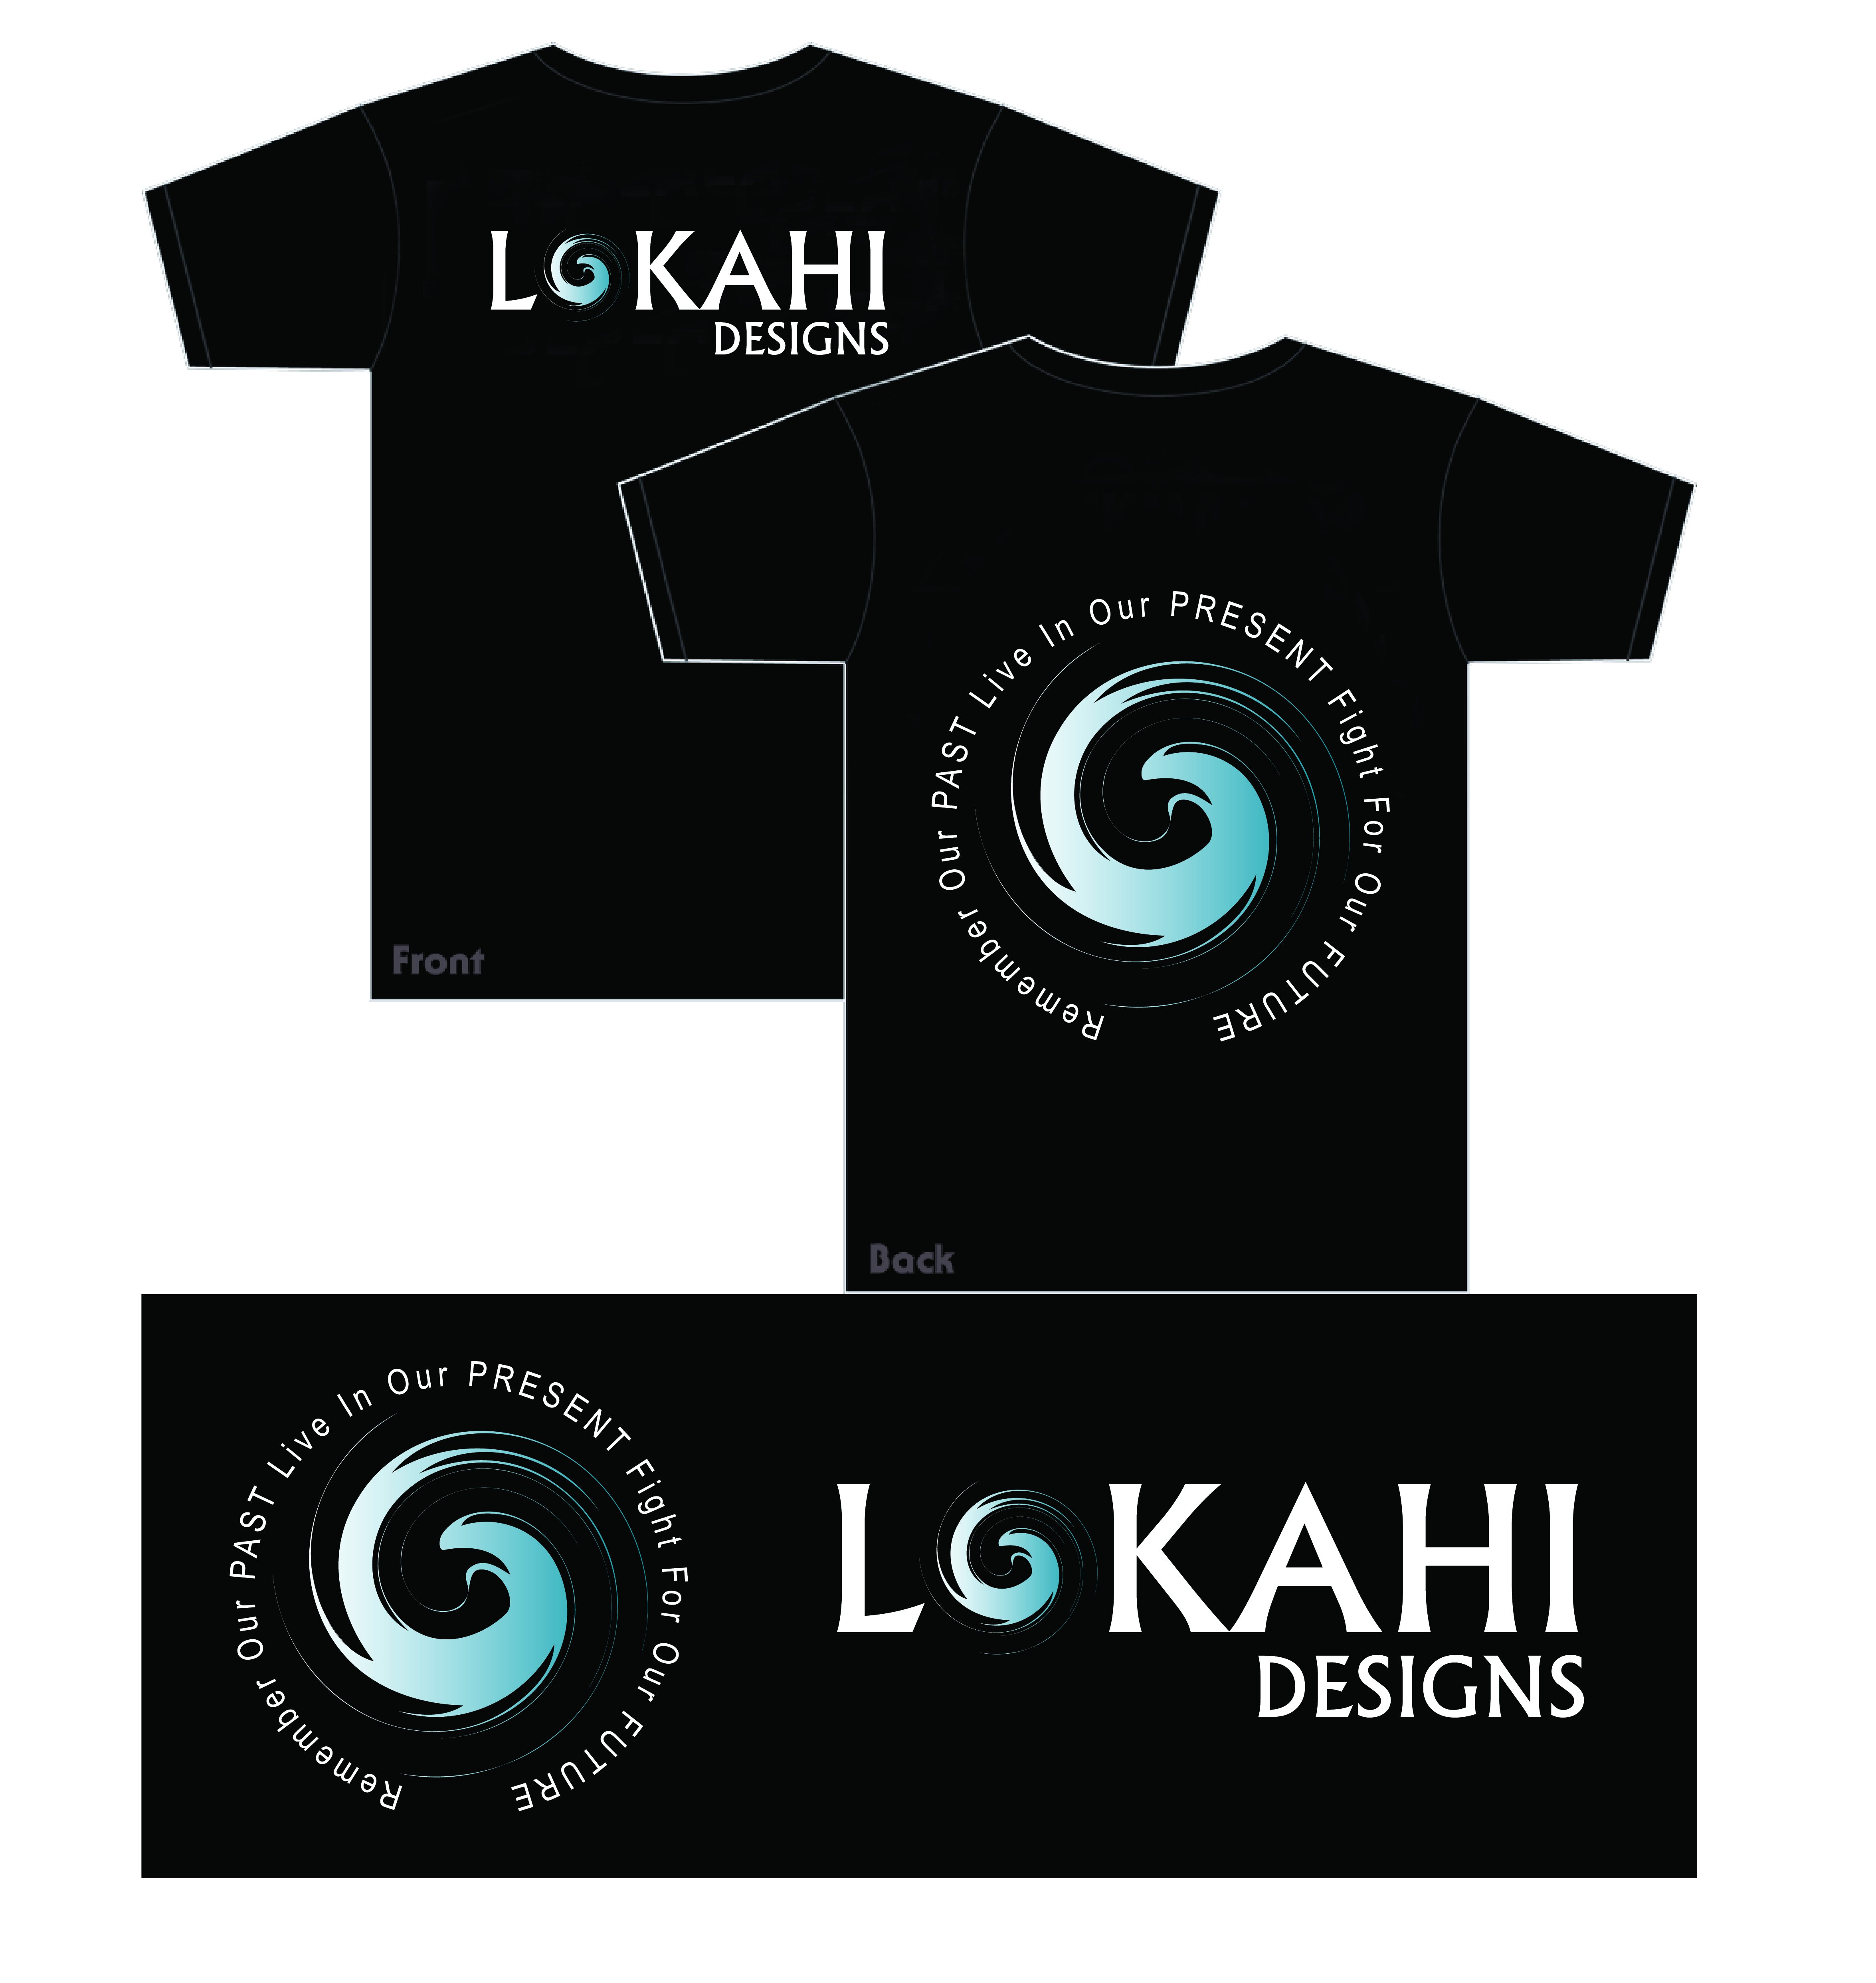 Clothing Design by 3draw - Entry No. 138 in the Clothing Design Contest Creative Clothing Design for LOKAHI designs.